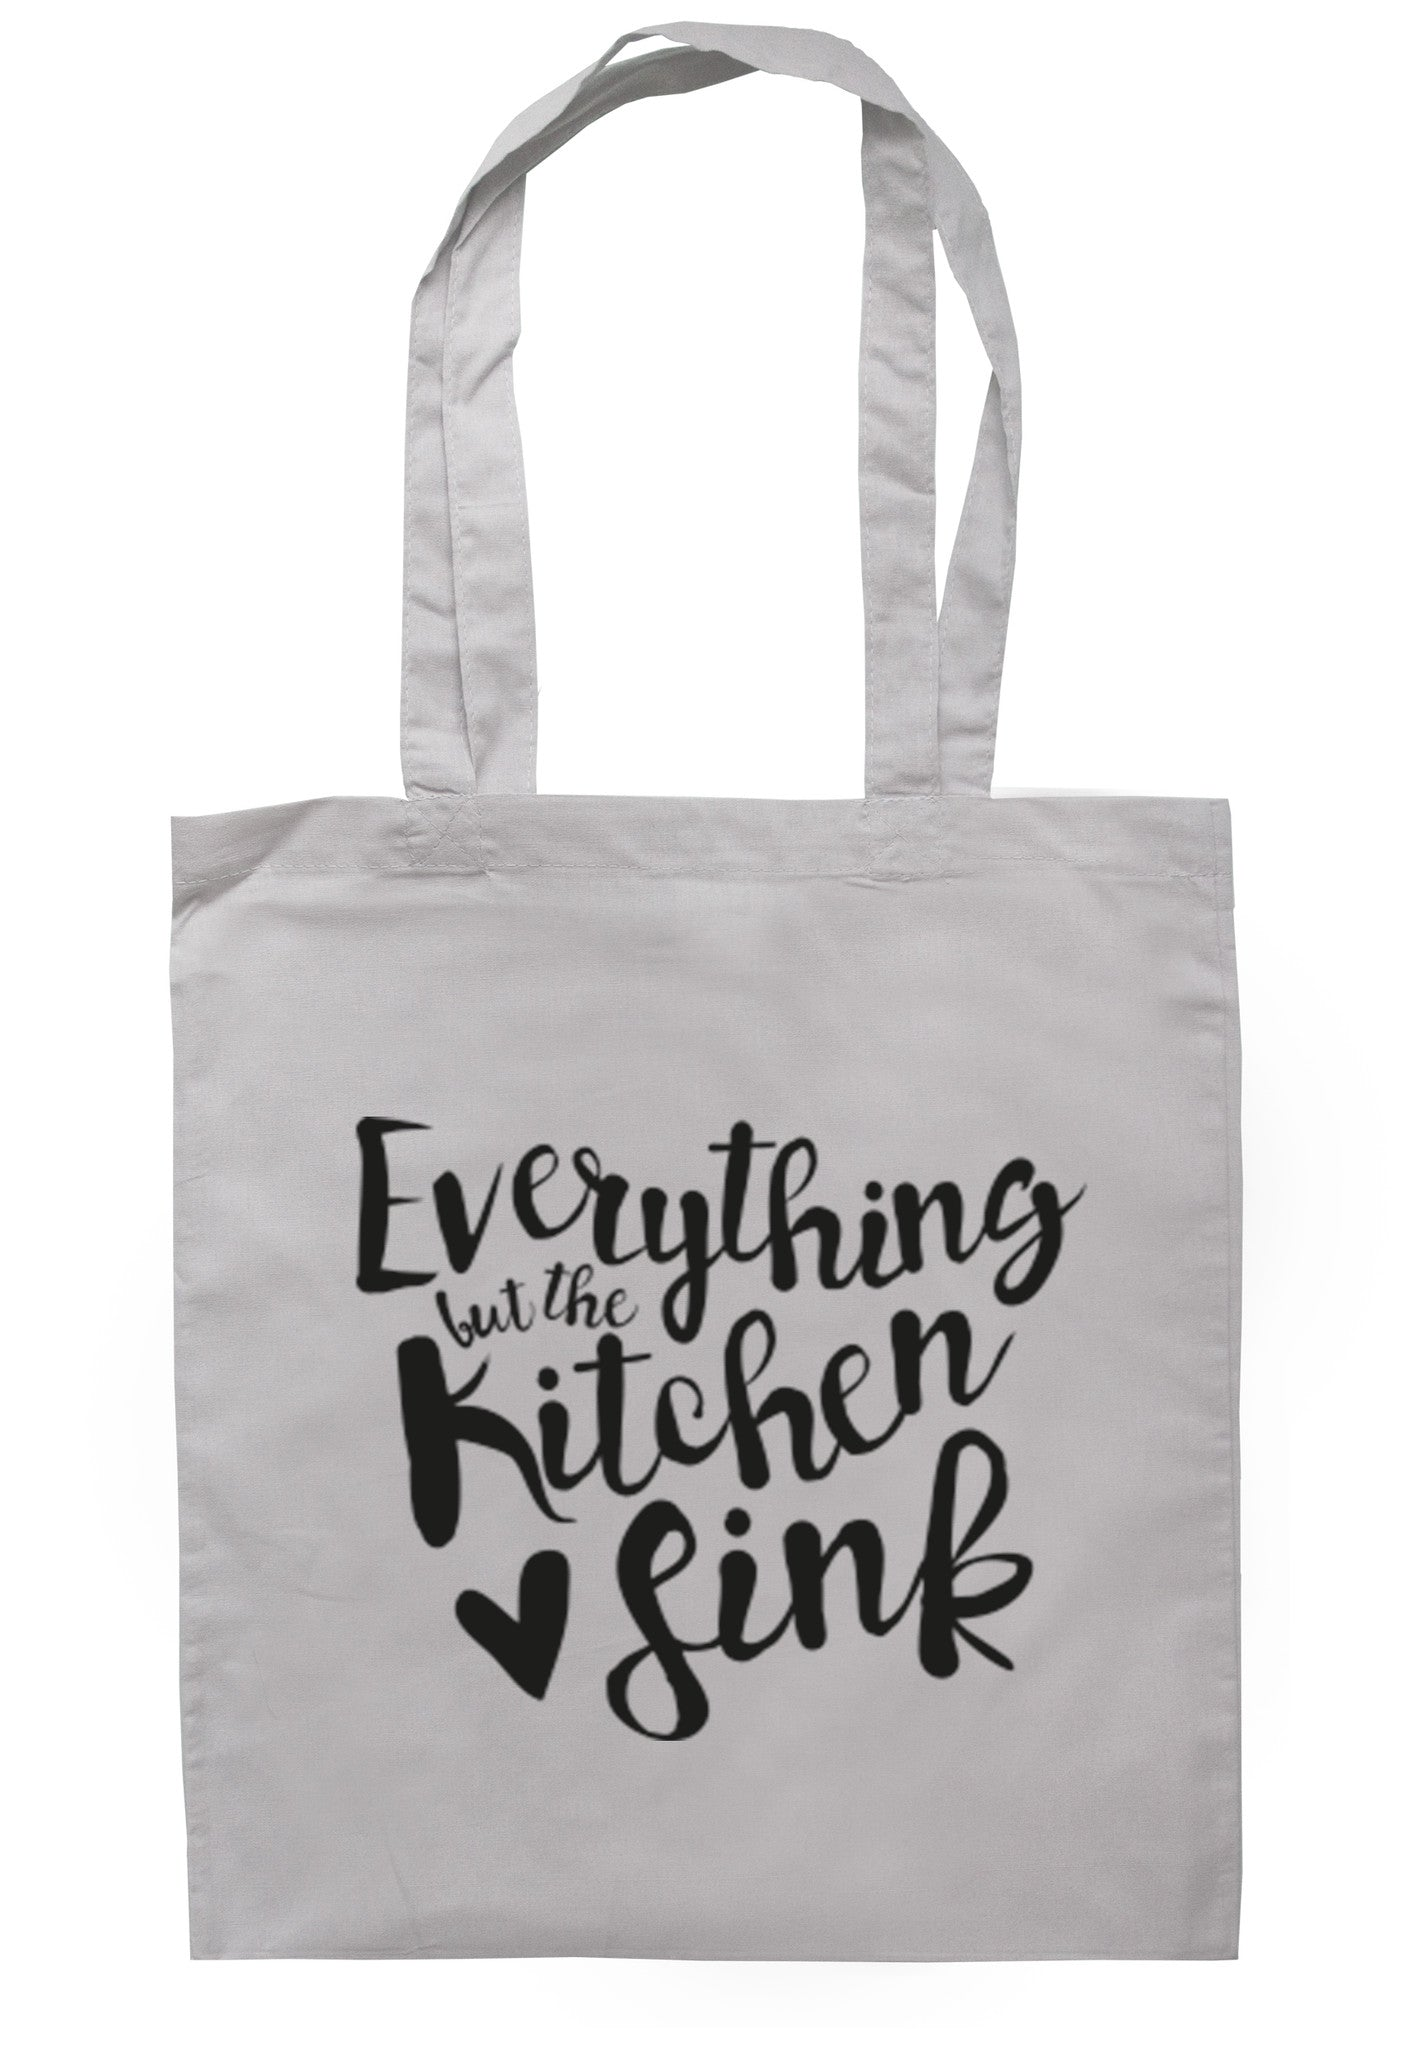 Everything But The Kitchen Sink everything but the kitchen sink tote bag tb0002 – illustrated